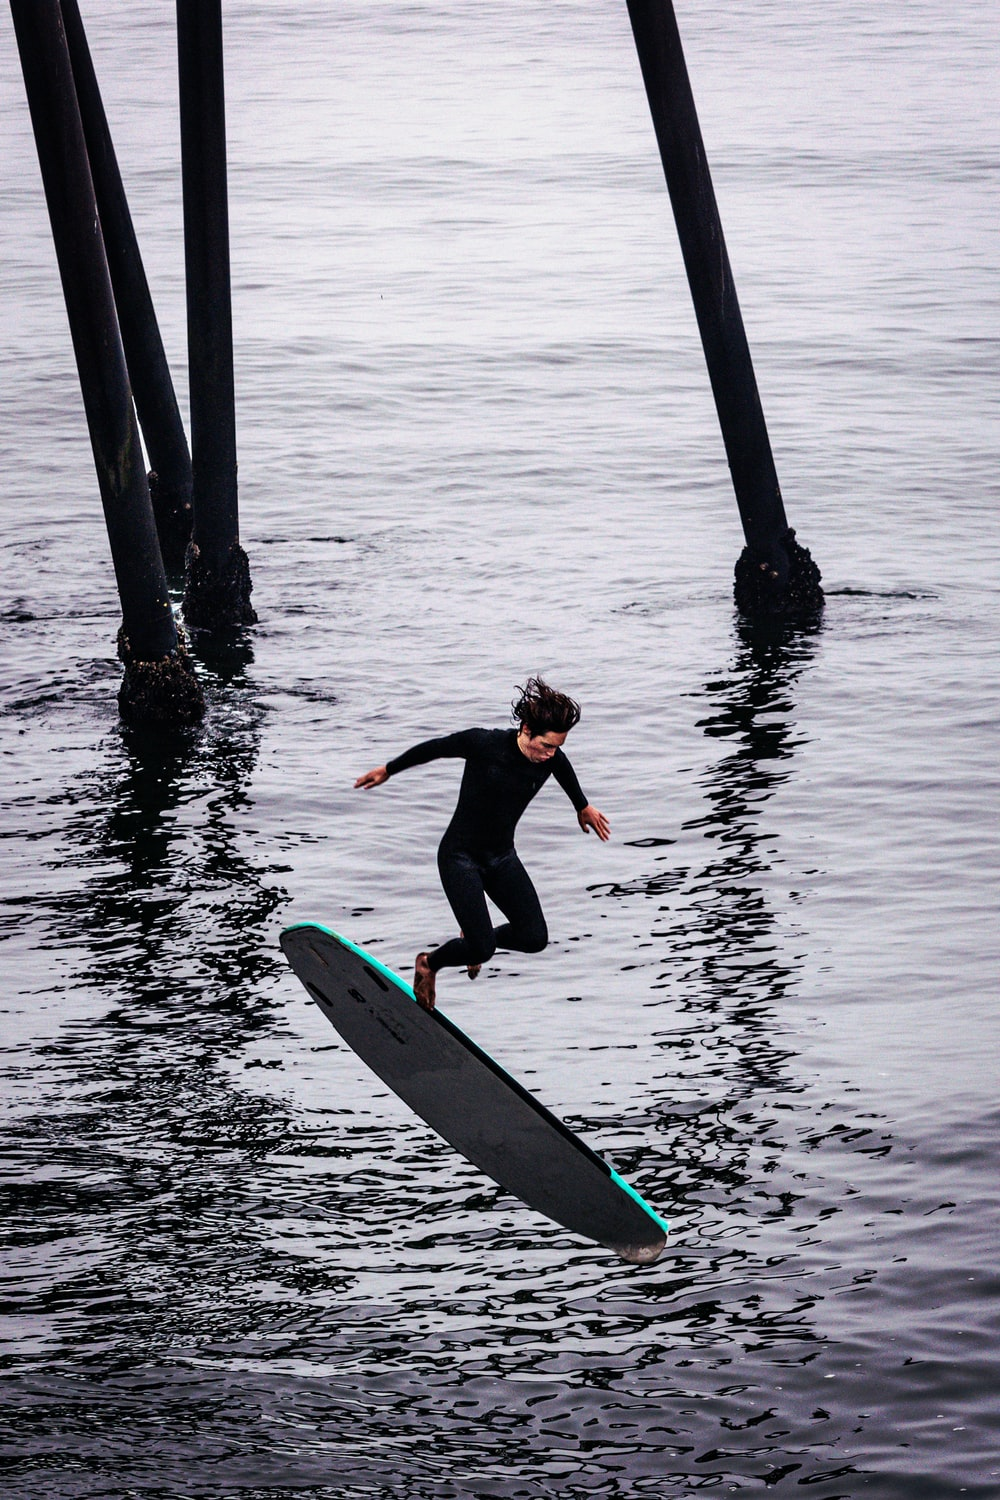 woman in black wetsuit riding on surfboard on body of water during daytime